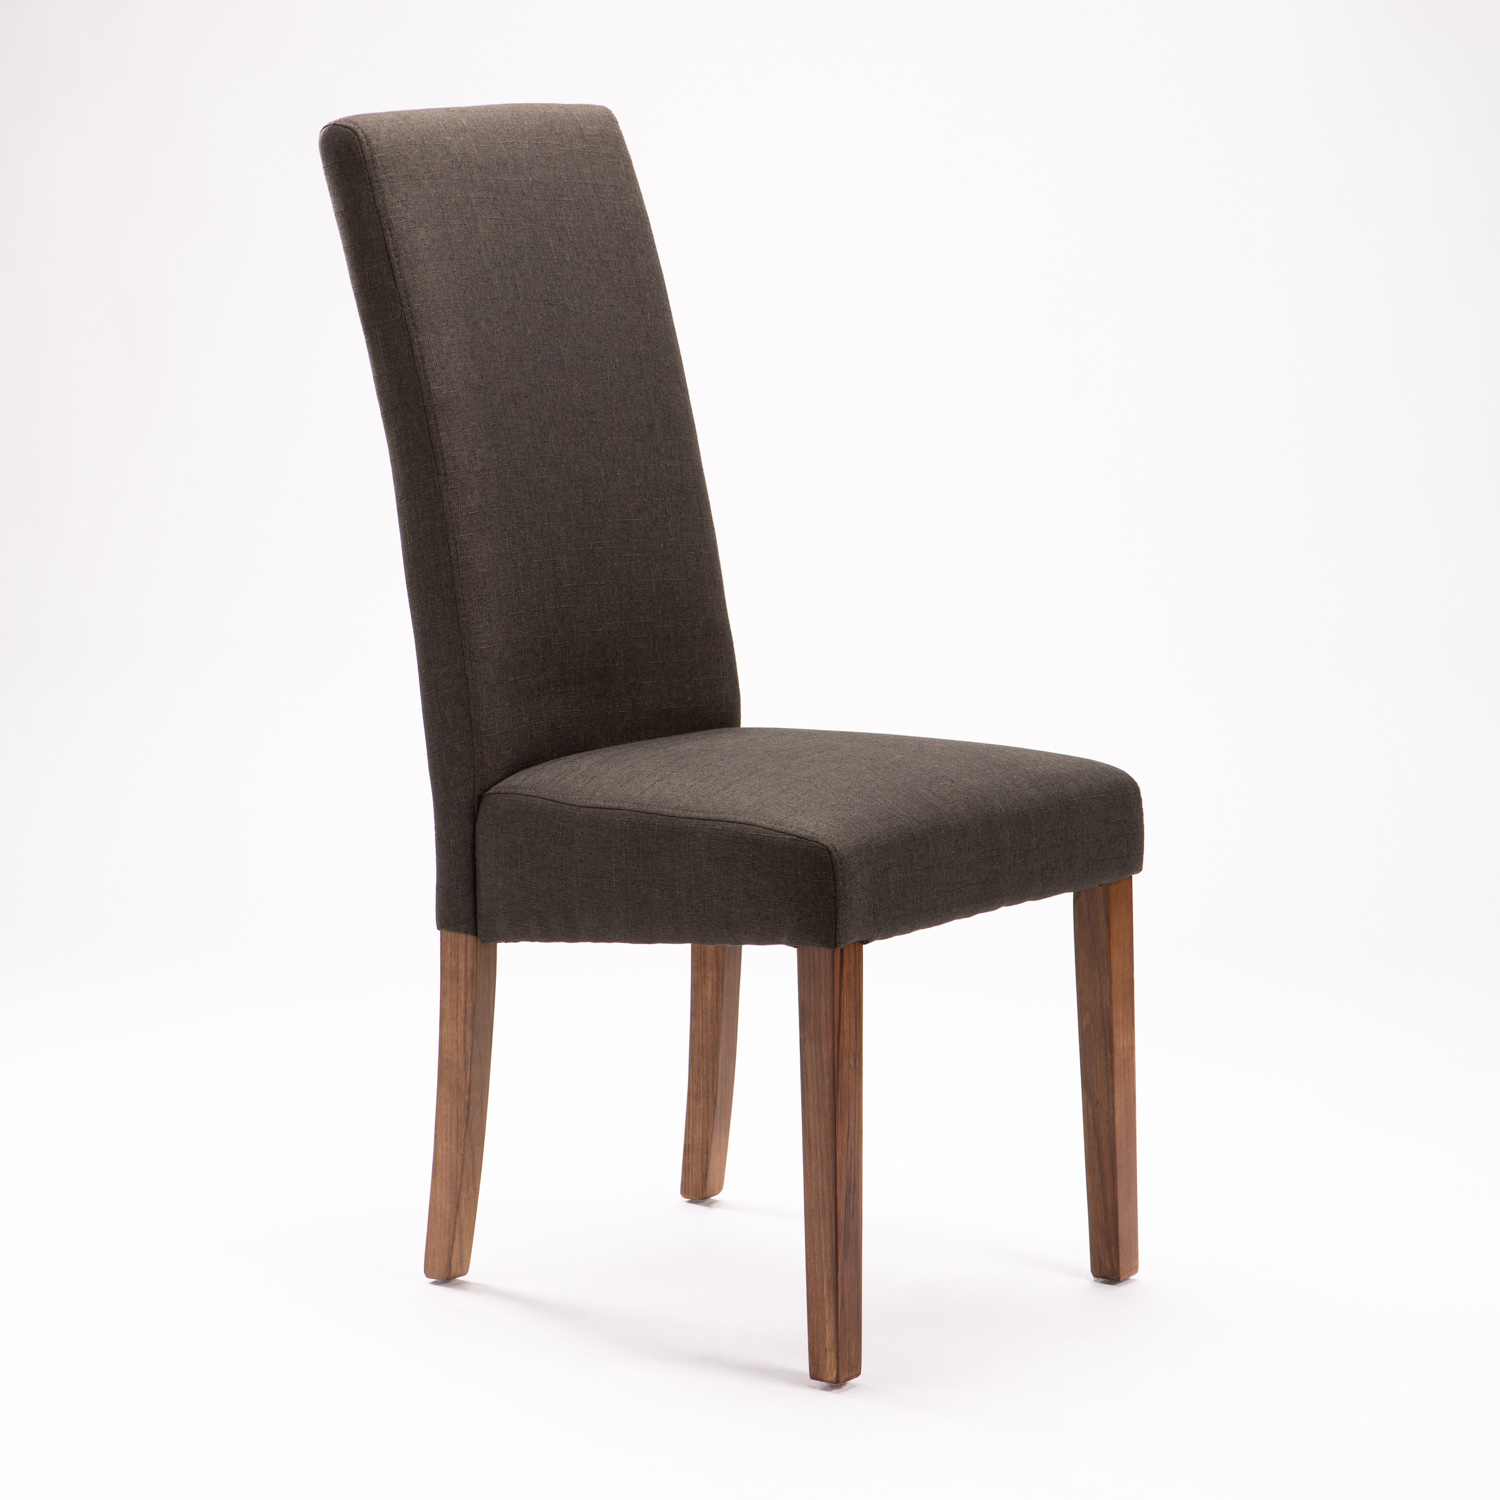 Earl Deluxe Fabric Dining Chair - Charcoal/wl Leg